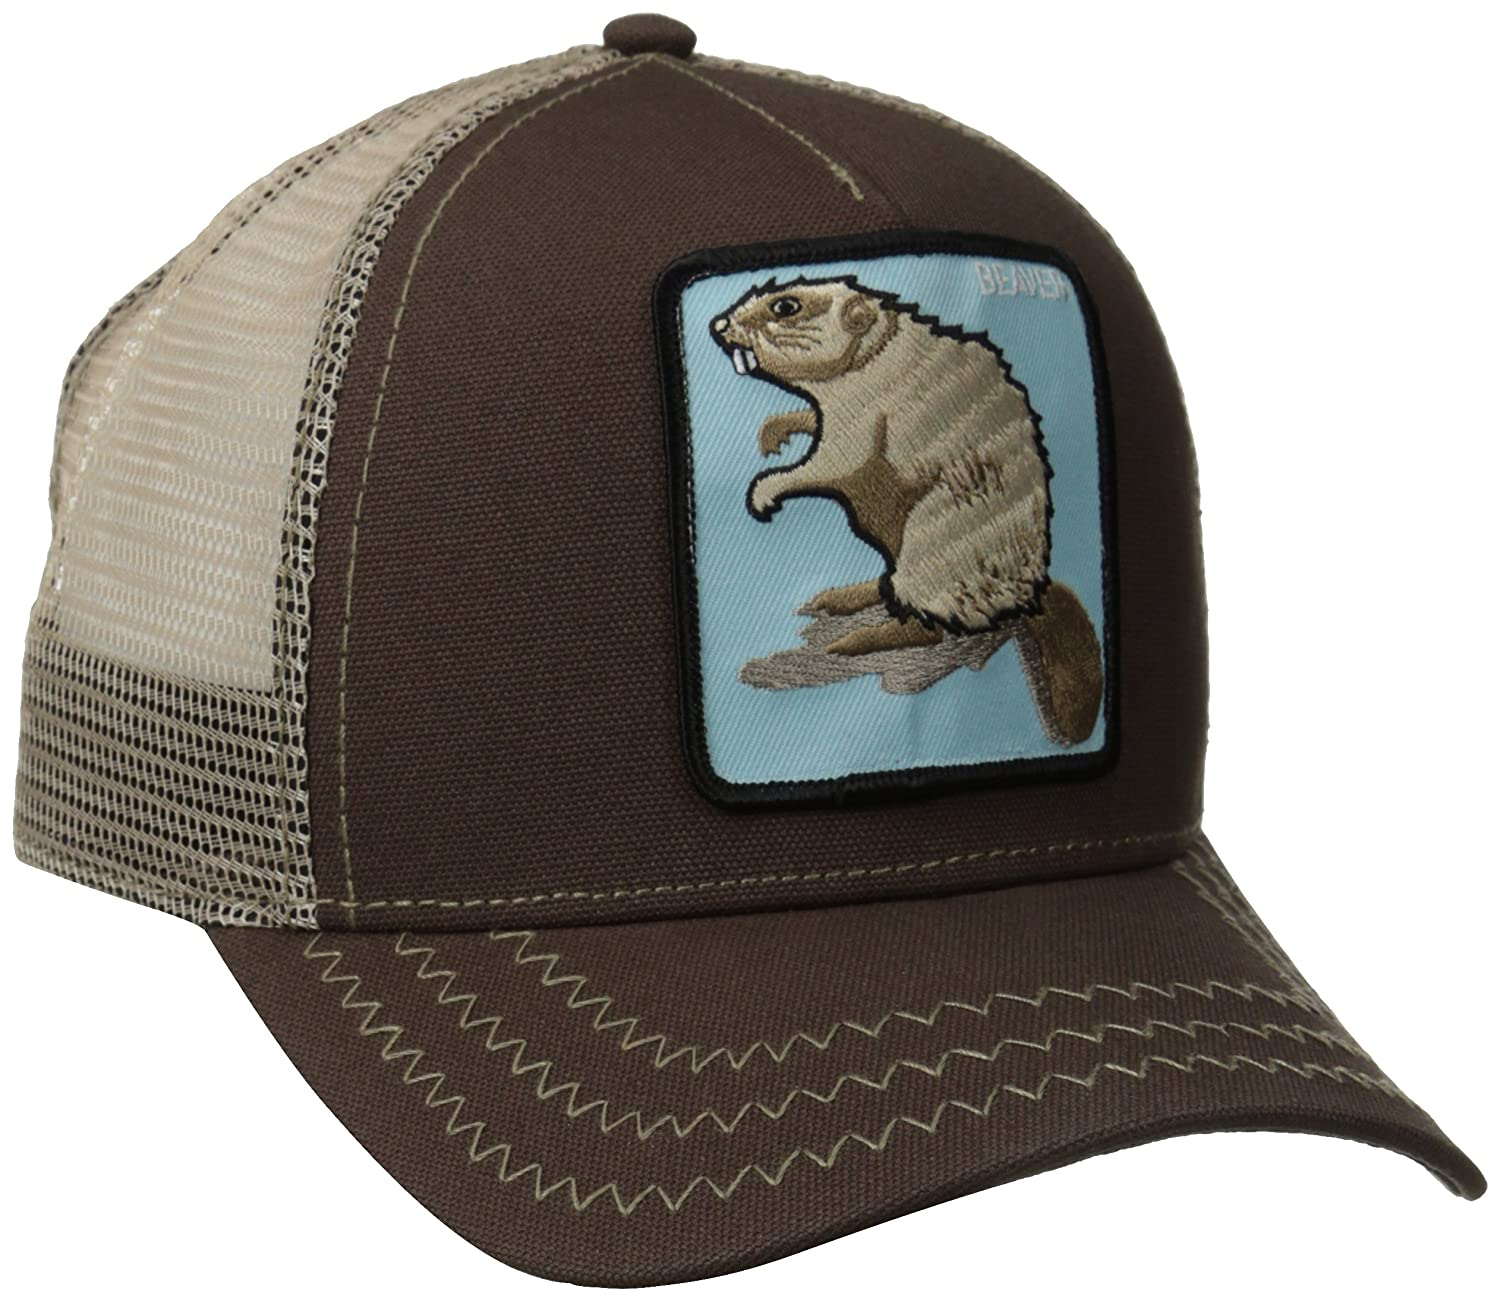 cad492df48ec0 Goorin Bros. Men's Animal Farm Baseball Dad Hat Trucker, Brown, One Size at  Amazon Men's Clothing store: